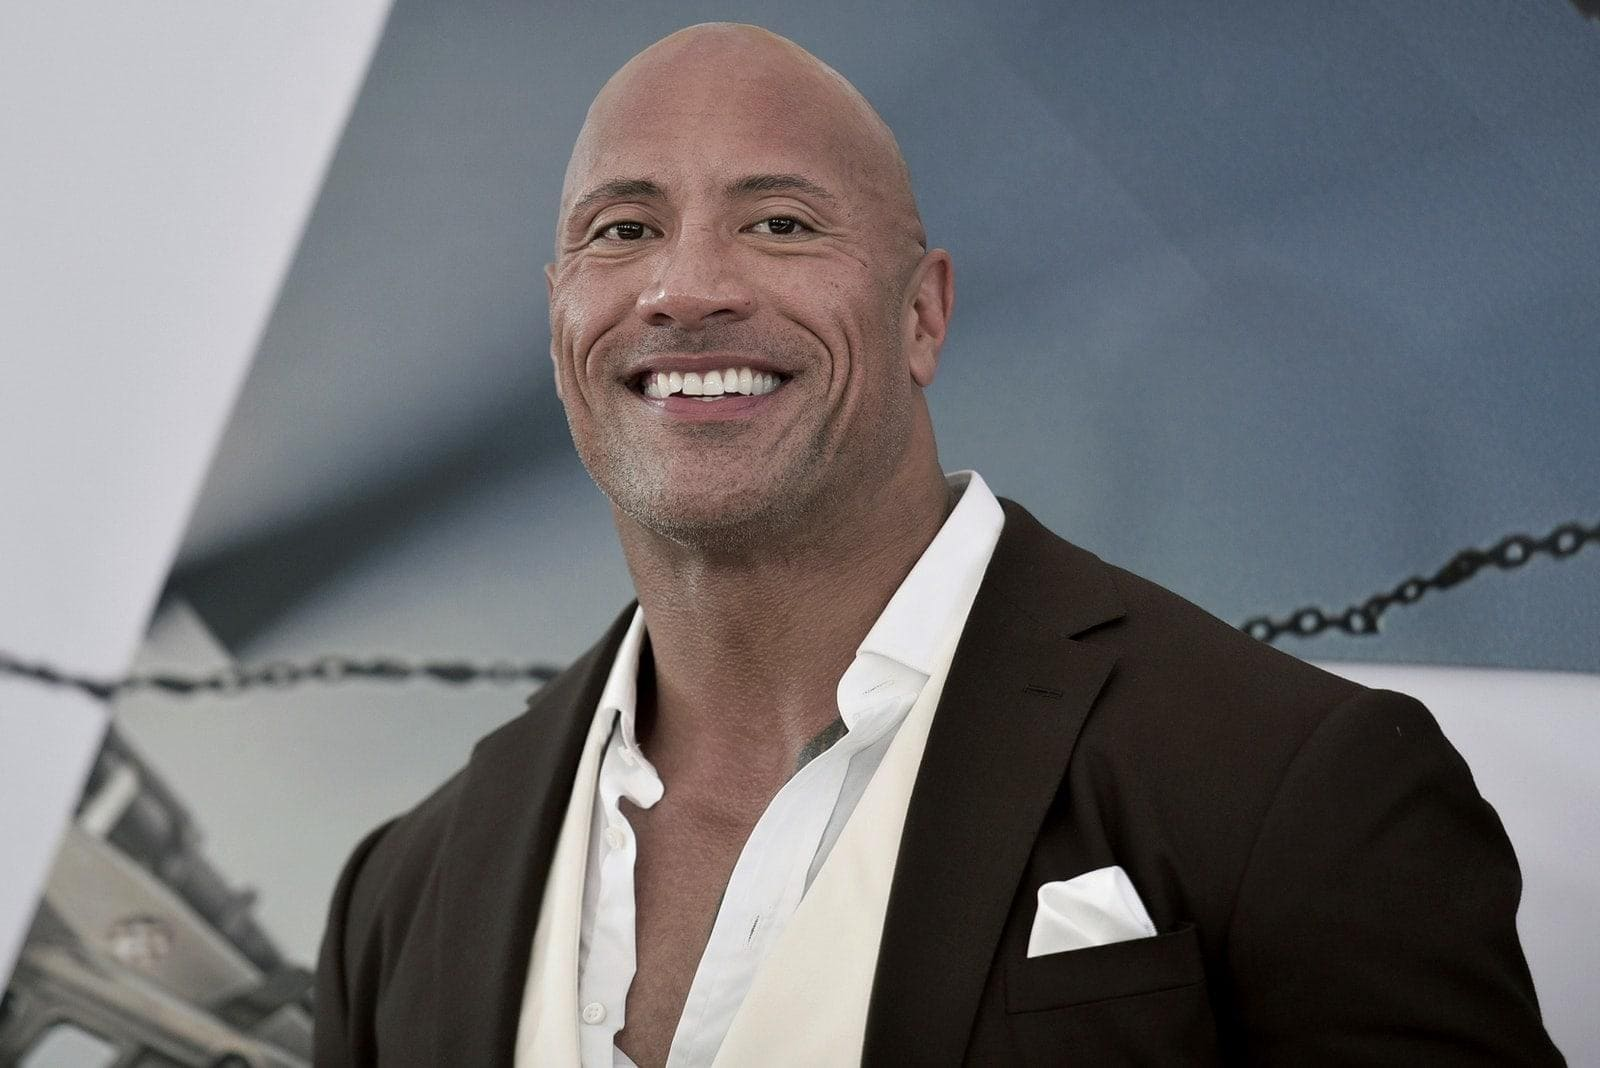 Dwayne Johnson BS Studium